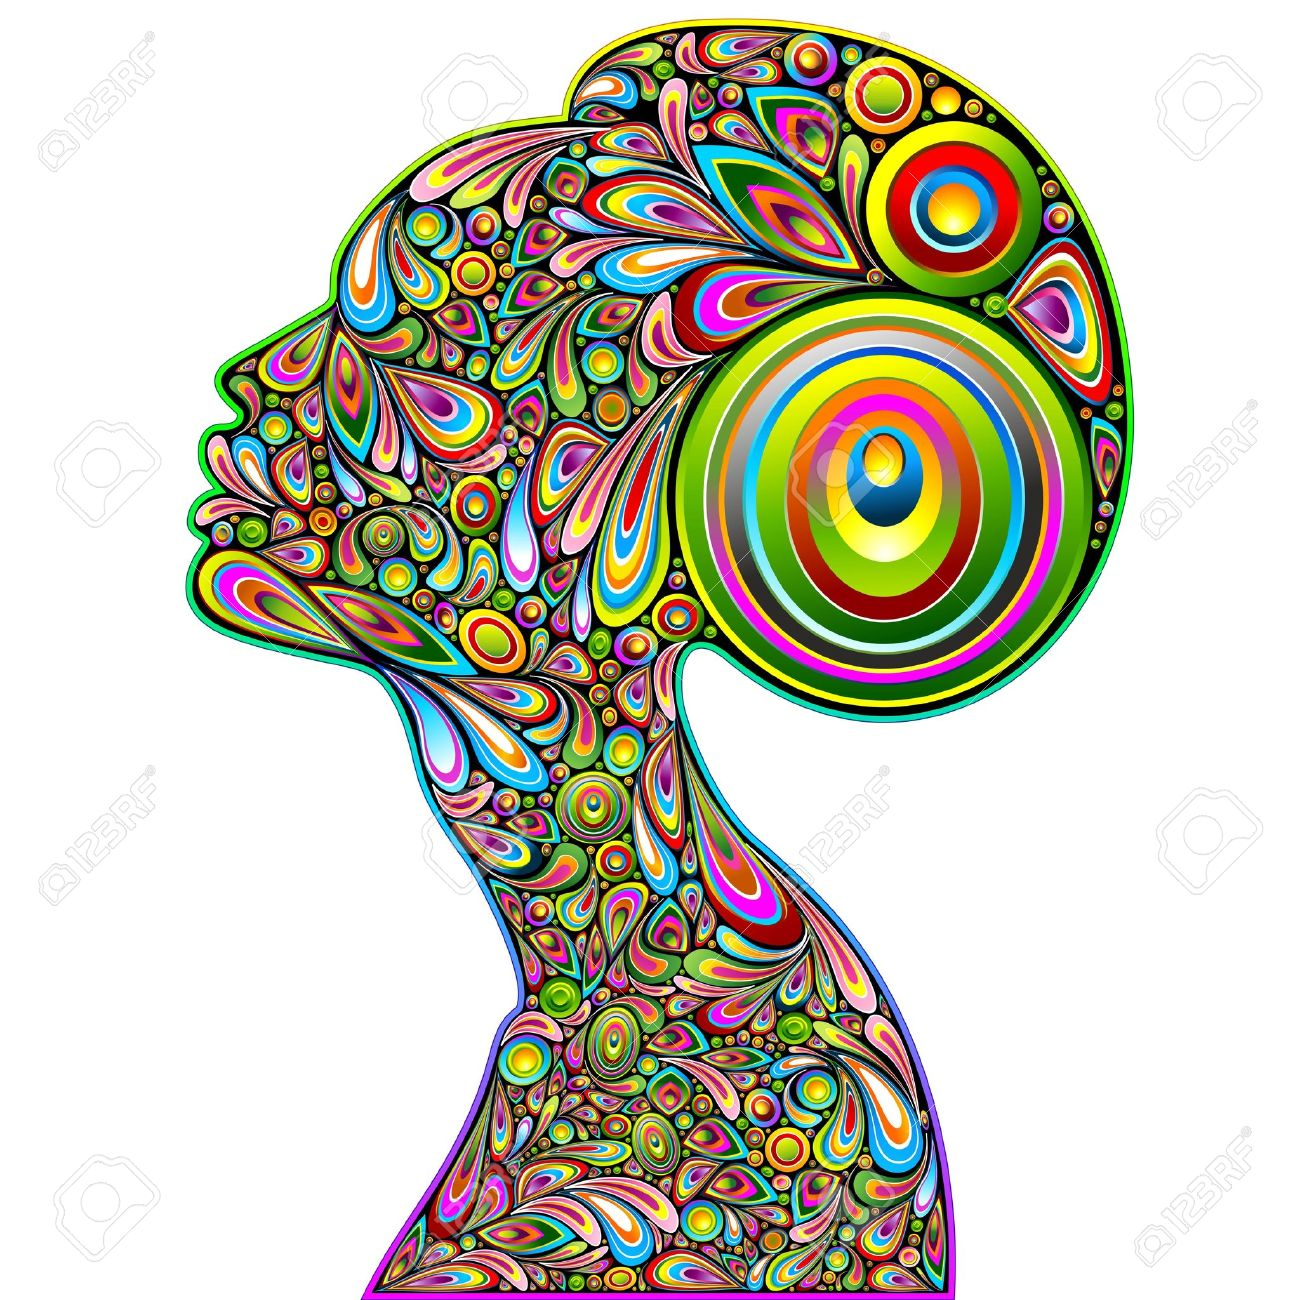 Woman Psychedelic Portrait Art Design Royalty Free Cliparts with regard to abstract art design images for your inspiration